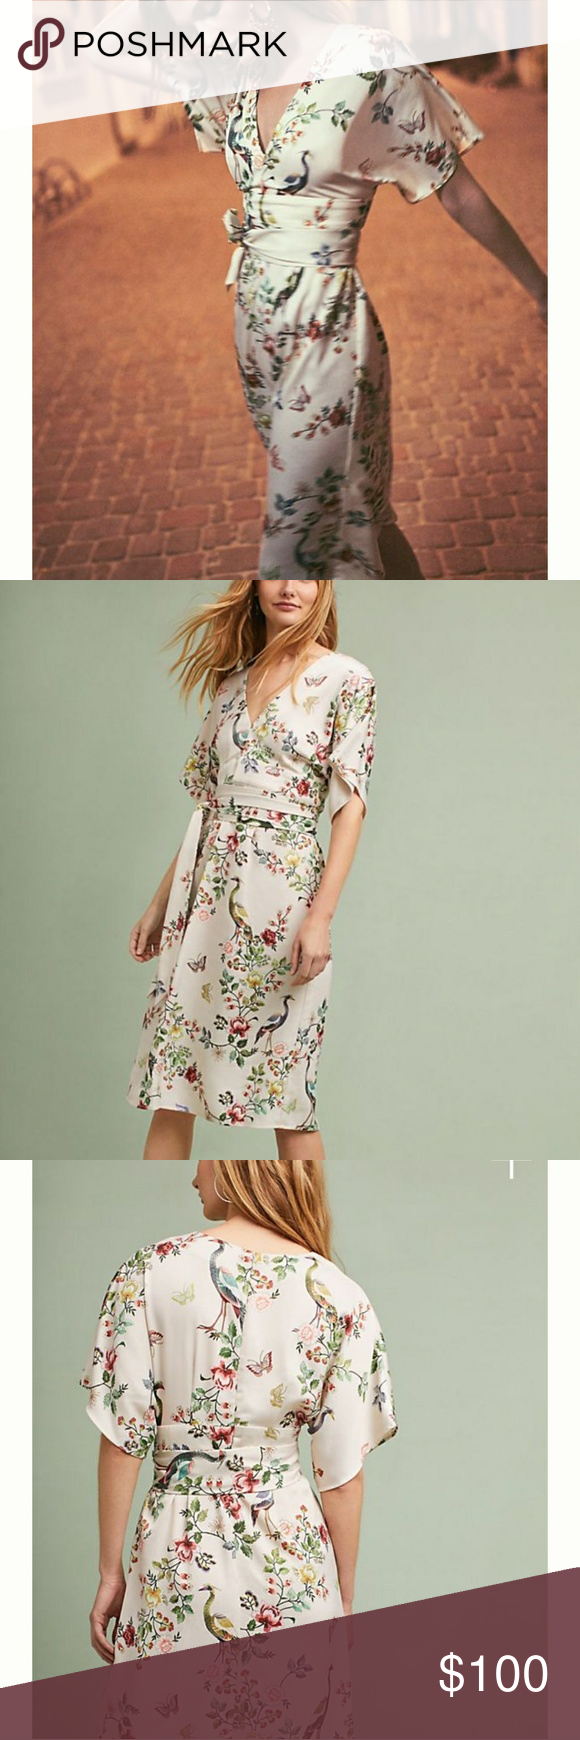 510325ede20a6 Avian Kimono Midi Dress by DRA Los Angeles Brand New w/ tags. Beautiful  kimono